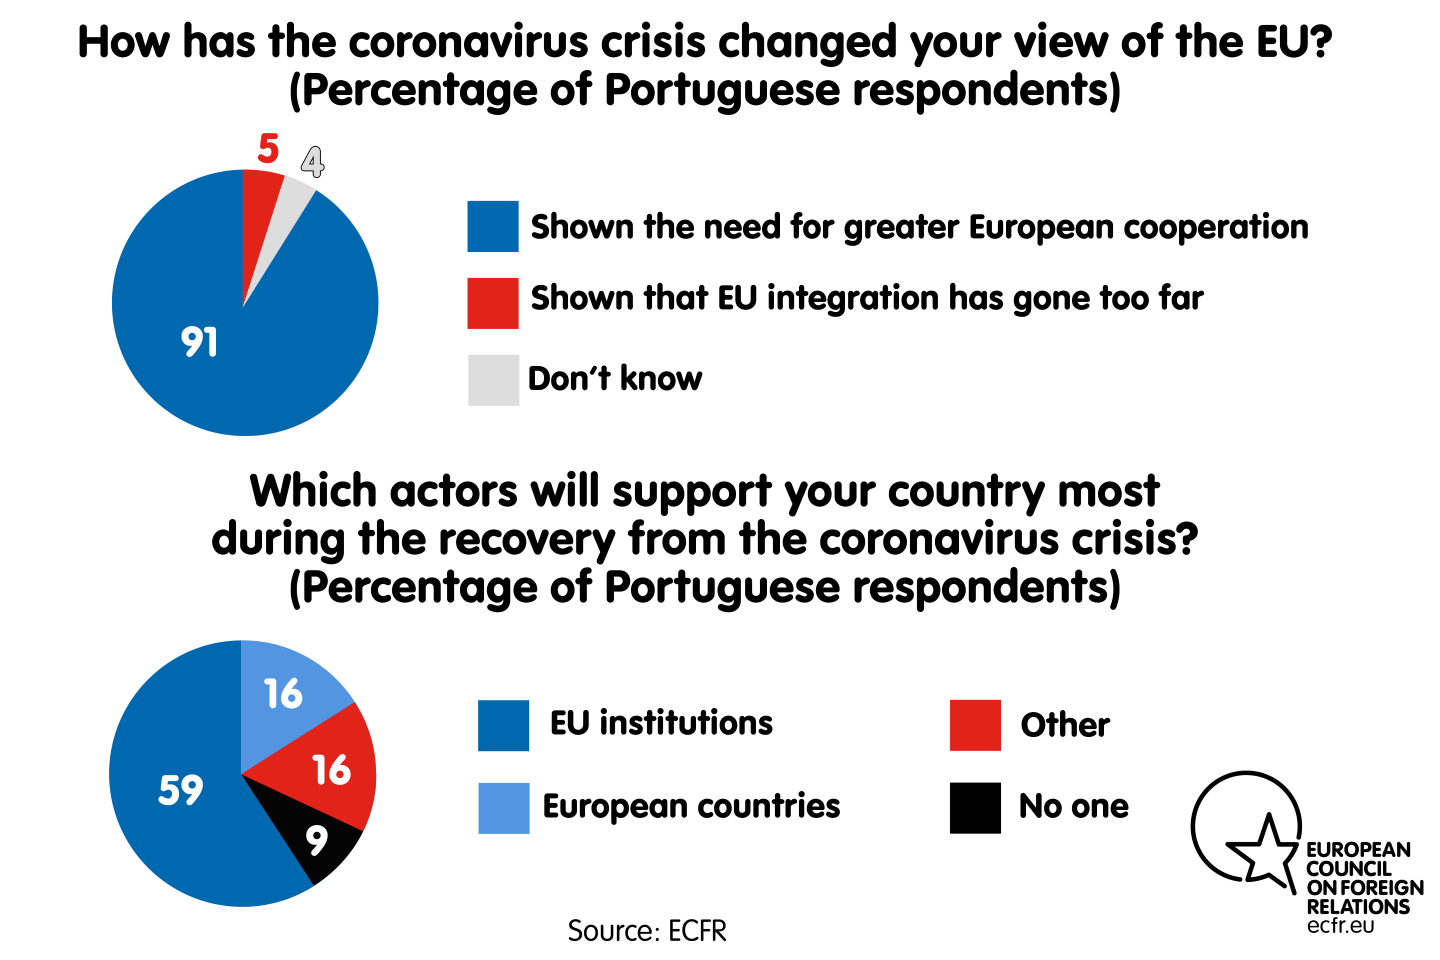 Has the coronavirus crisis changed your view of the EU? Which actors will support your country most during the recovery?